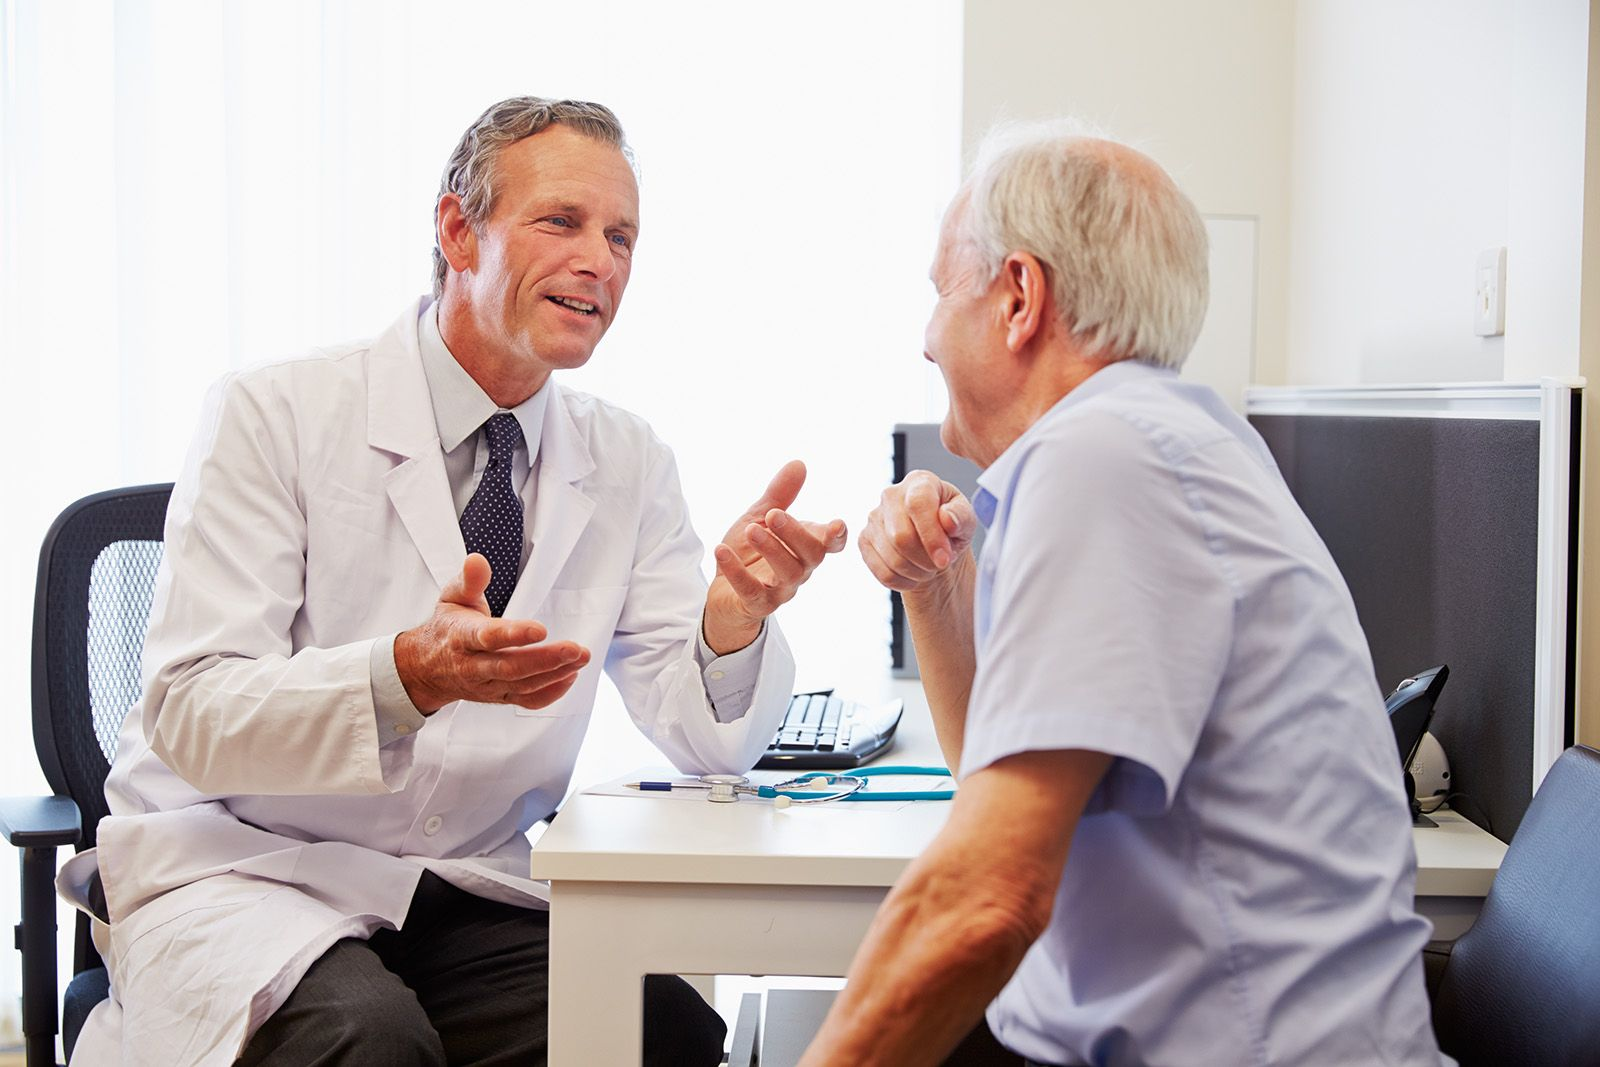 Male doctor conducting consultation with older male patient